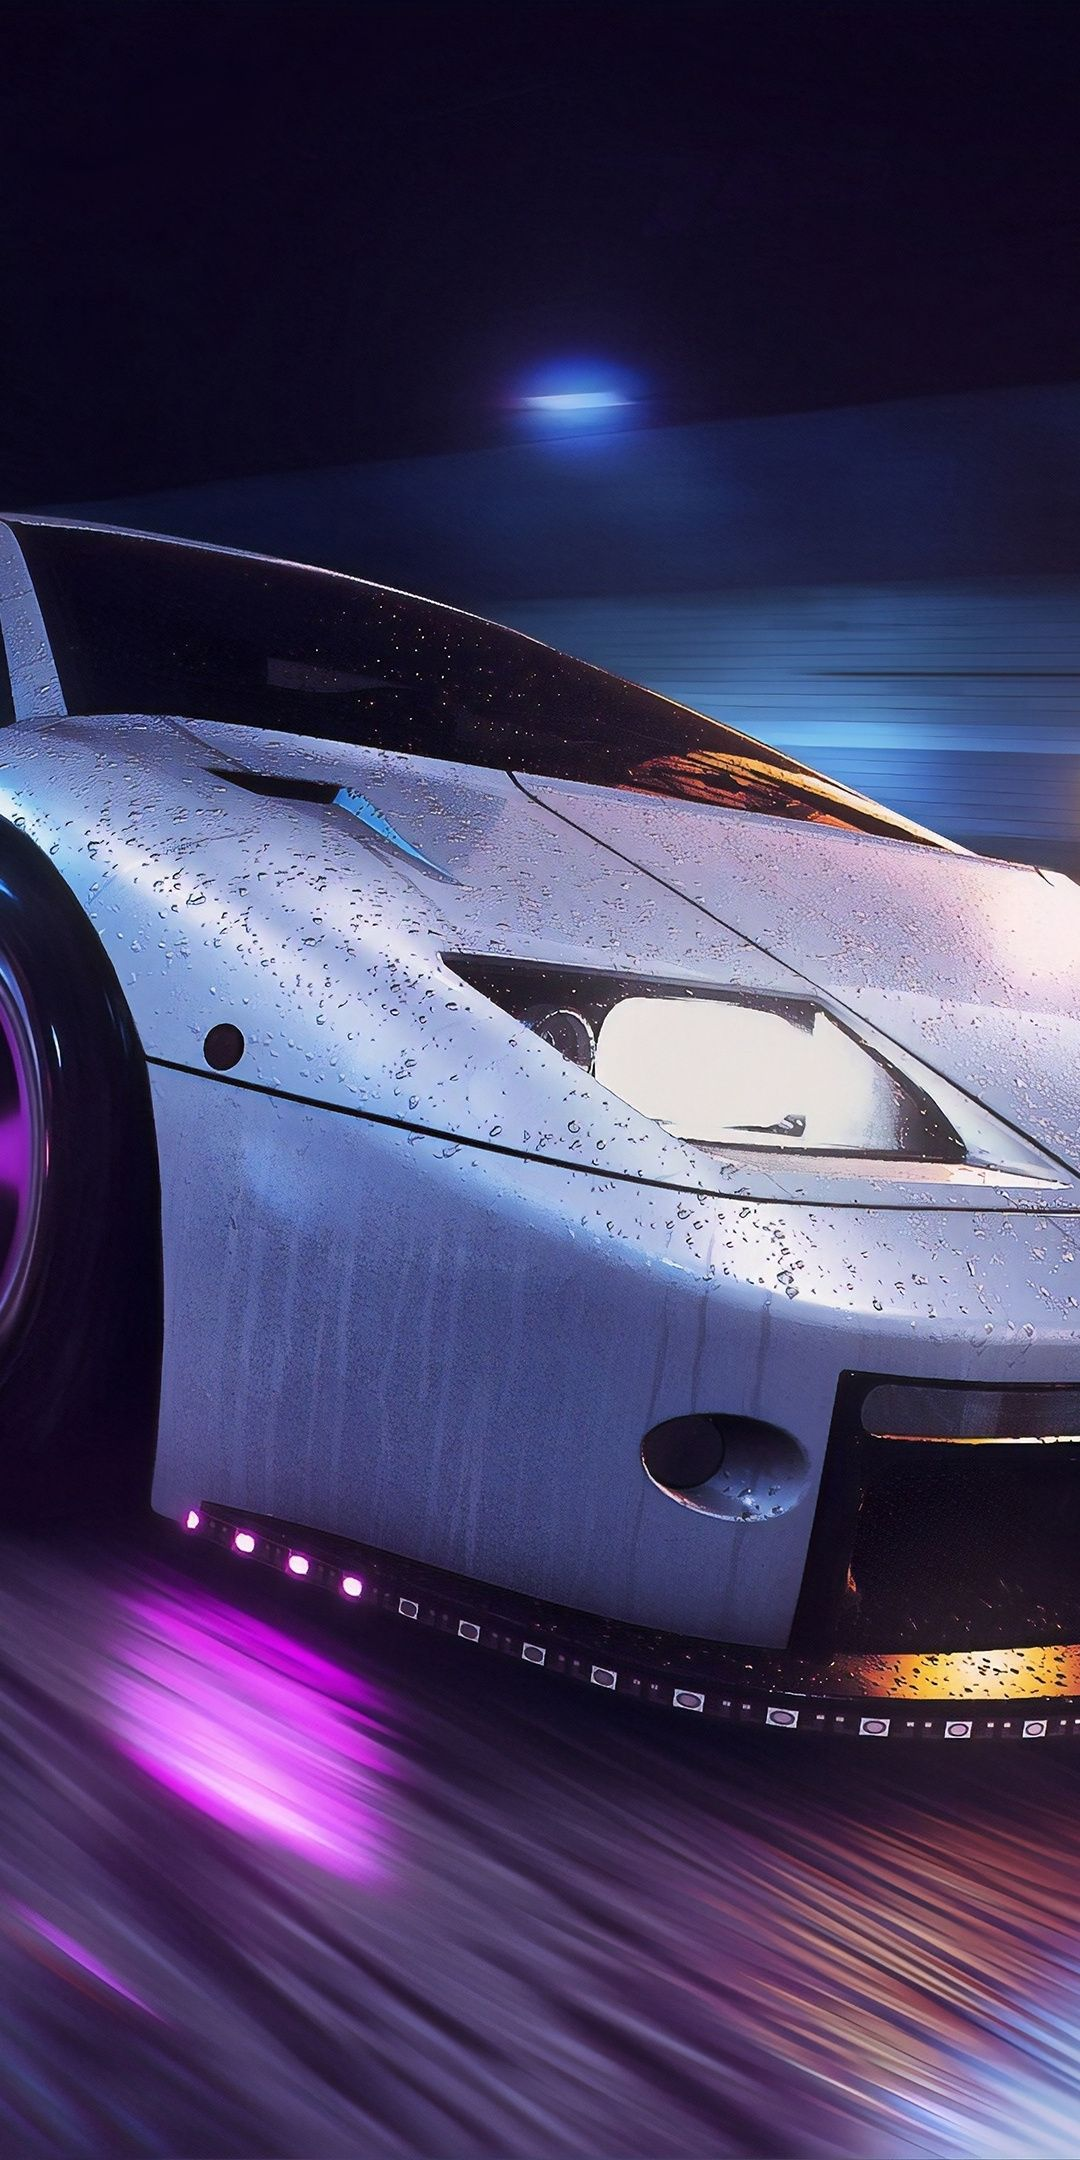 Download 1080x2160 Wallpaper Lamborghini Diablo Need For Speed Video Game Honor 7x Honor 9 Lite Need For Speed Cars Car Wallpapers Sports Cars Lamborghini